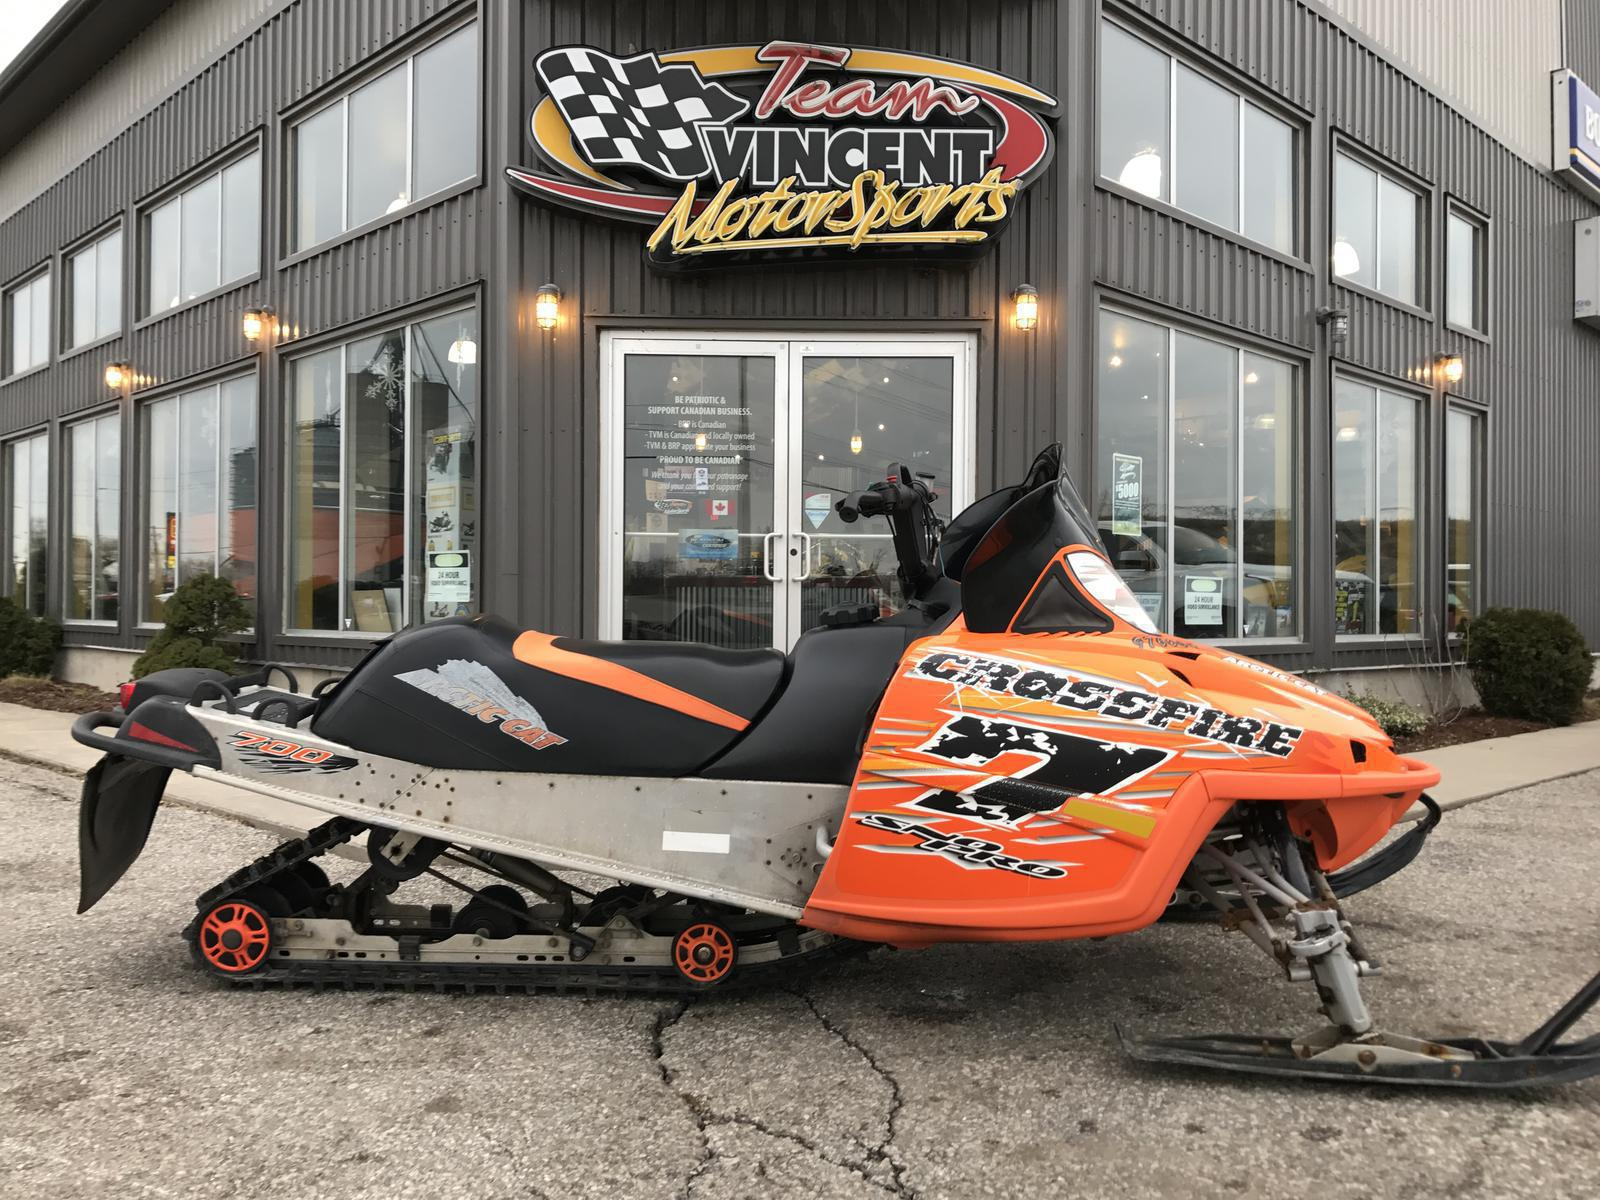 2006 Arctic Cat CROSSFIRE 700 For Sale By Team Vincent Motorsports Inc